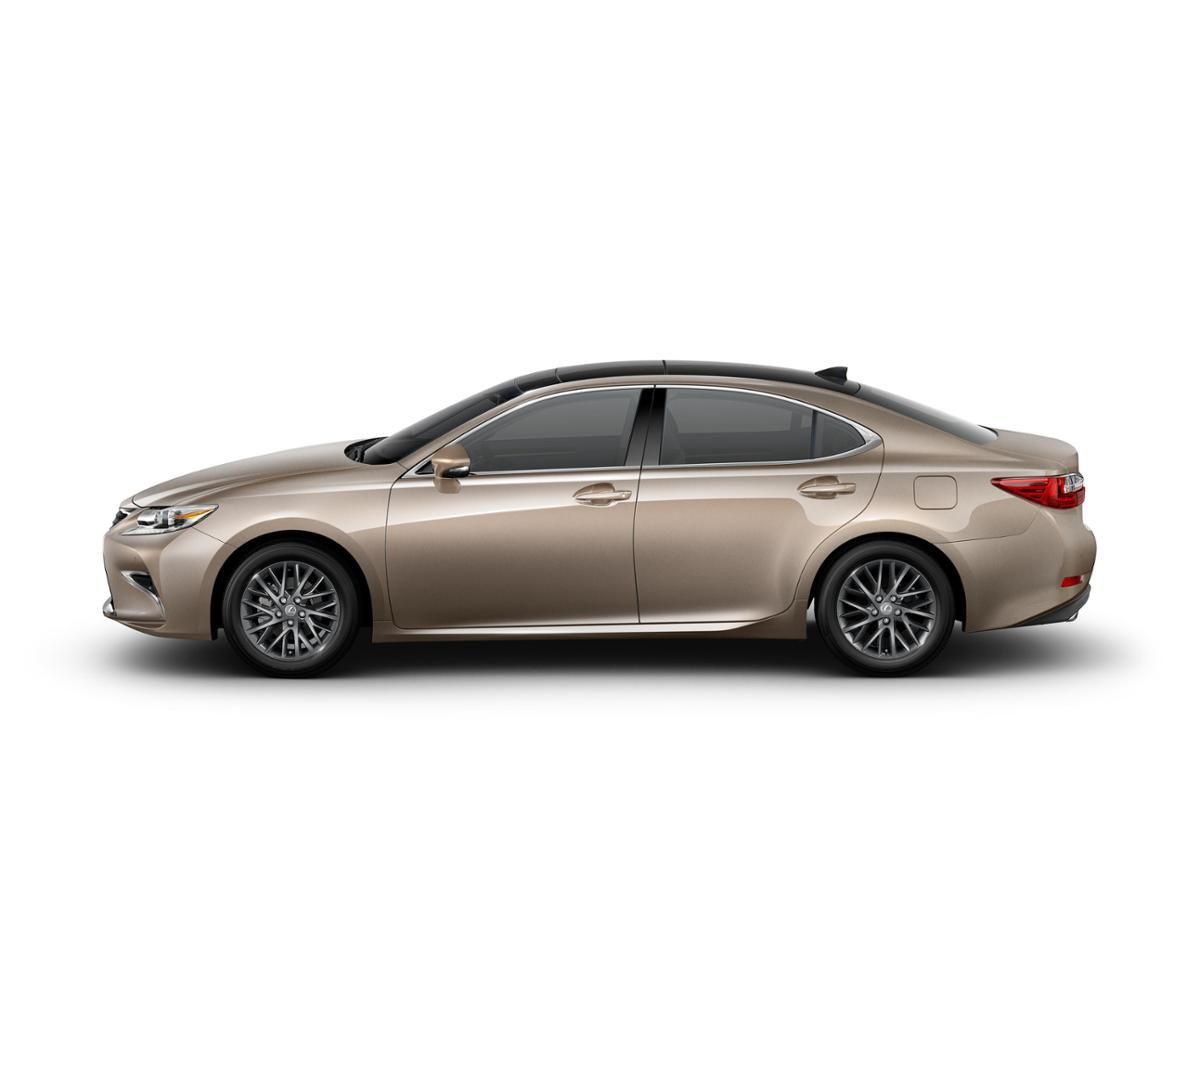 2018 Lexus ES 350 Vehicle Photo in Bedford, NH 03110